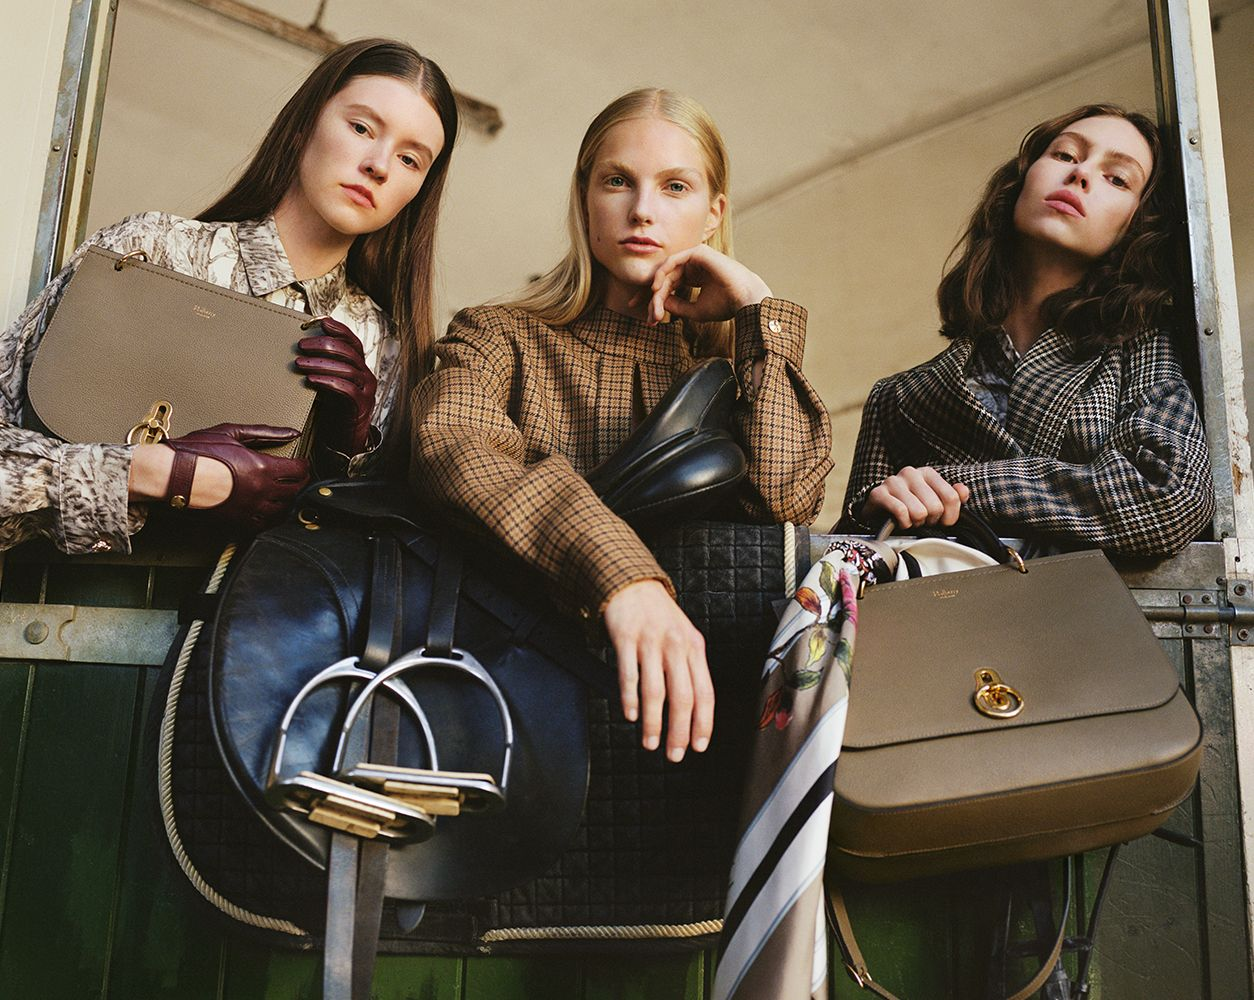 15fb419a77 ... italy mulberry the new autumn 17 campaign featuring the new amberley bag.  inspired by british ...